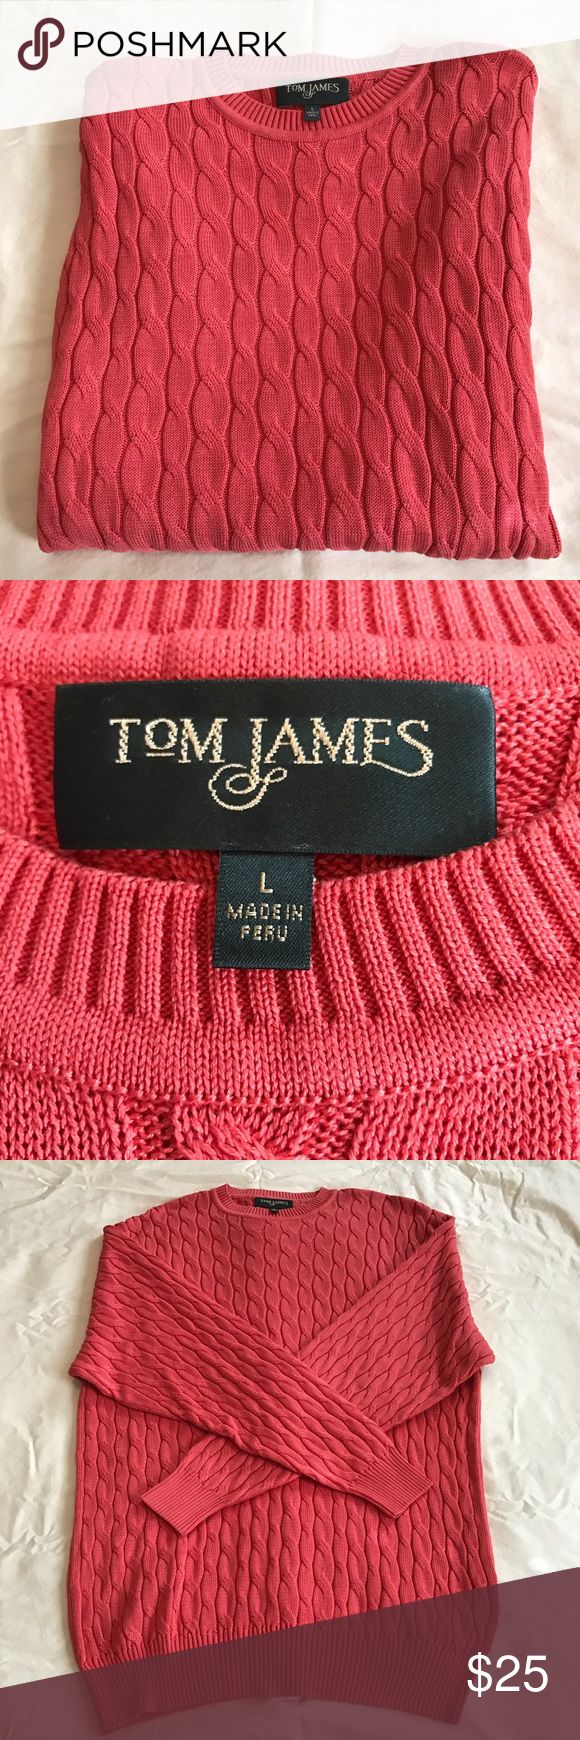 Men's pullover sweater Beautiful pullover sweater long sleeve 100% mercerized Pima cotton like new coral color Tom James Clothing Sweaters Cardigan